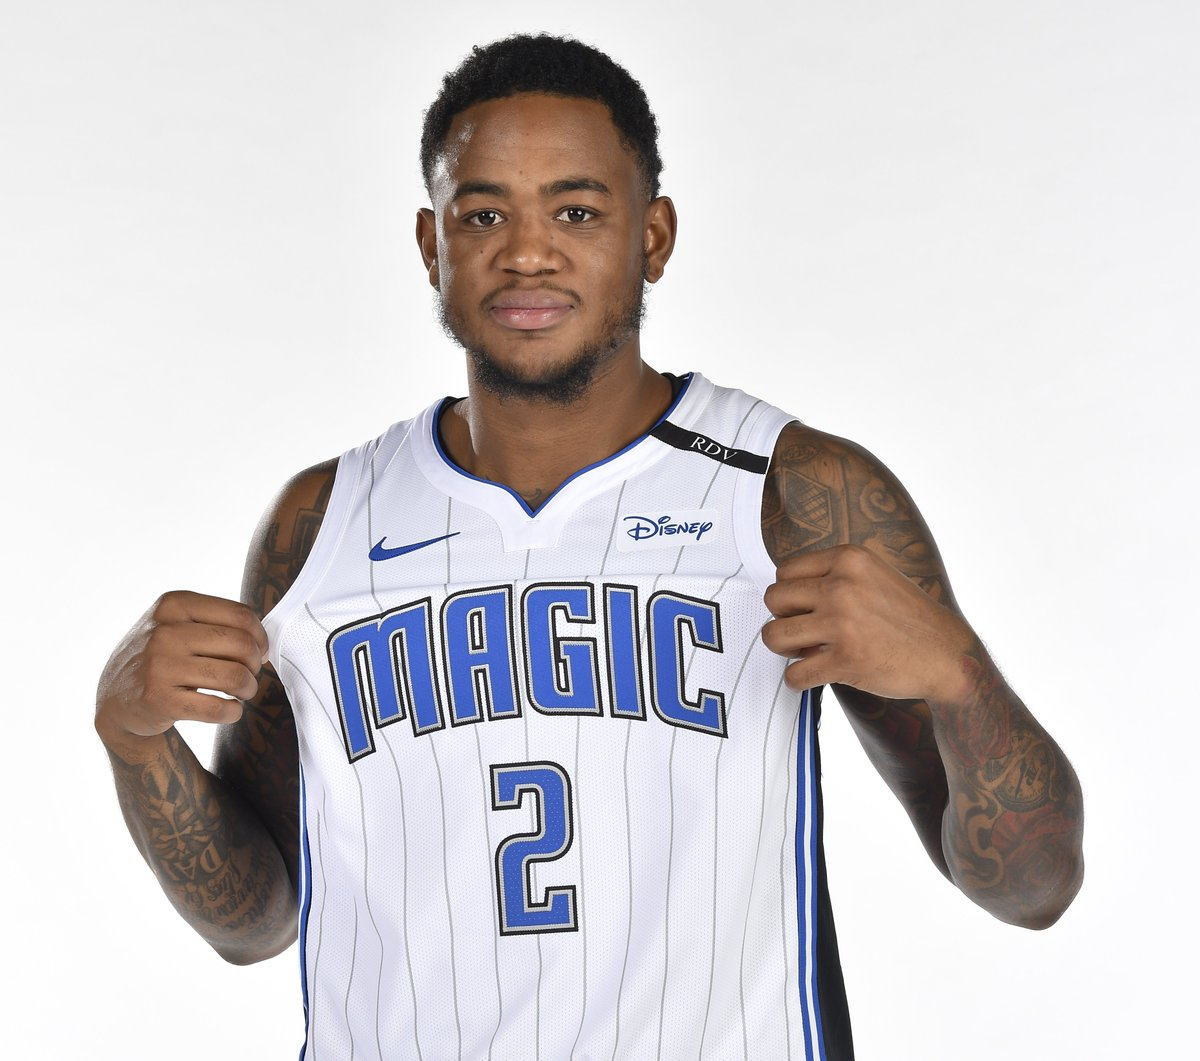 Join us in wishing @MartinJarell of the @OrlandoMagic a HAPPY 25th BIRTHDAY! #NBABDAY #PureMagic